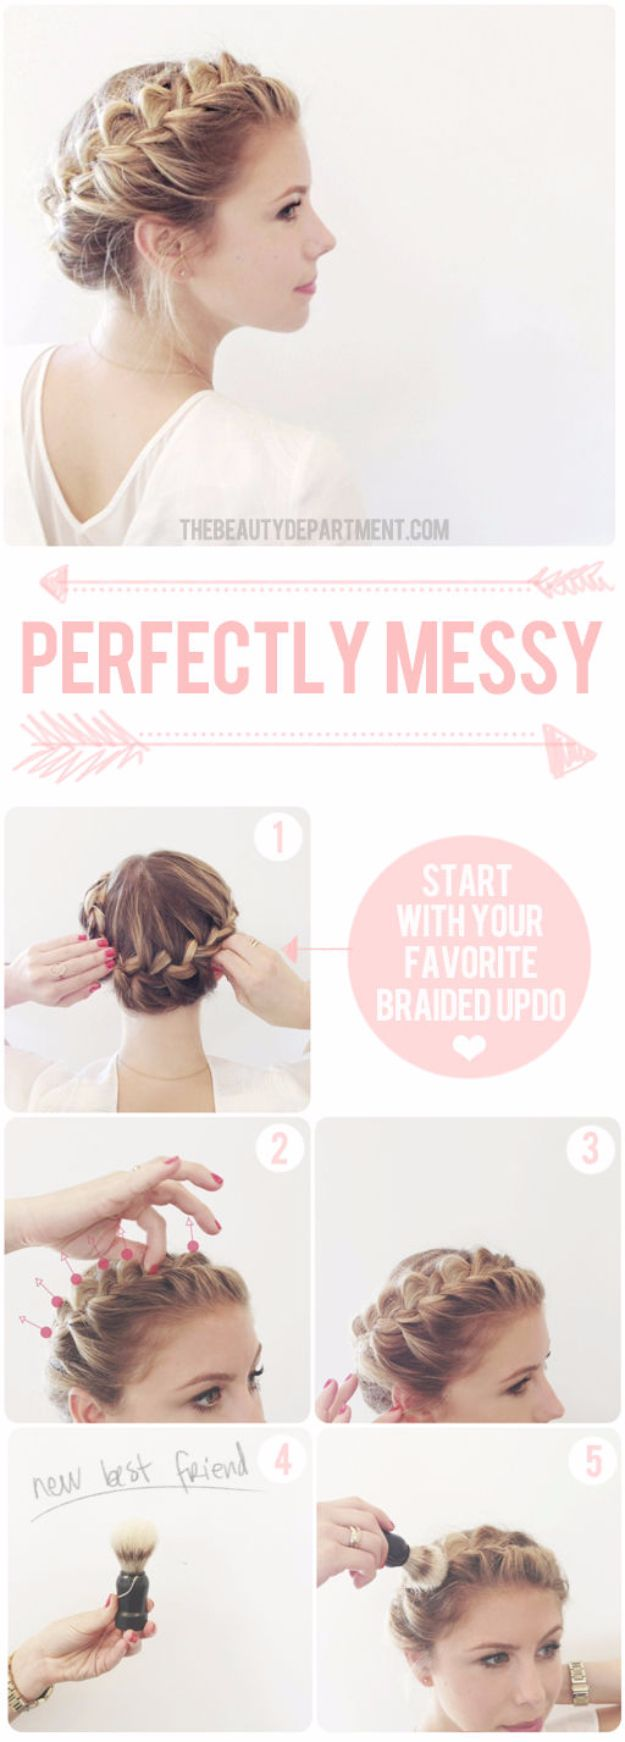 Quick and Easy Updo Hairstyles - Cute Updo - Hair Hacks And Popular Haircuts For The Lazy Girl. Hairdos and Up Dos Including The Half Up, Chignons, Twists, Beauty Tips, and DIY Tutorial Videos For Bangs, Products, Curls, The Top Knot, Coiffures, and Shoulder Length Hair - https://www.thegoddess.com/quick-easy-updo-hairstyles